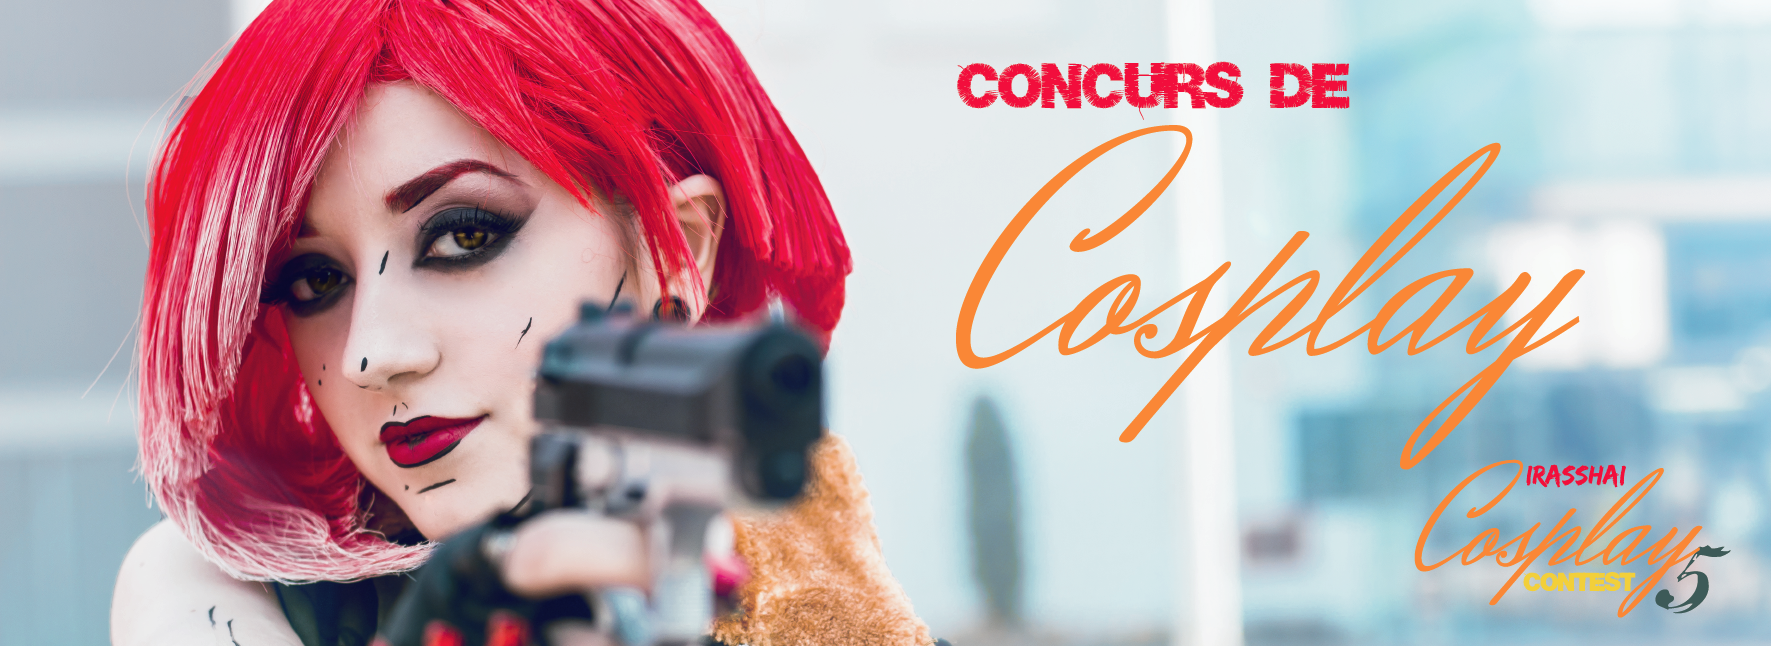 ICC5 web top_Concurs de Cosplay